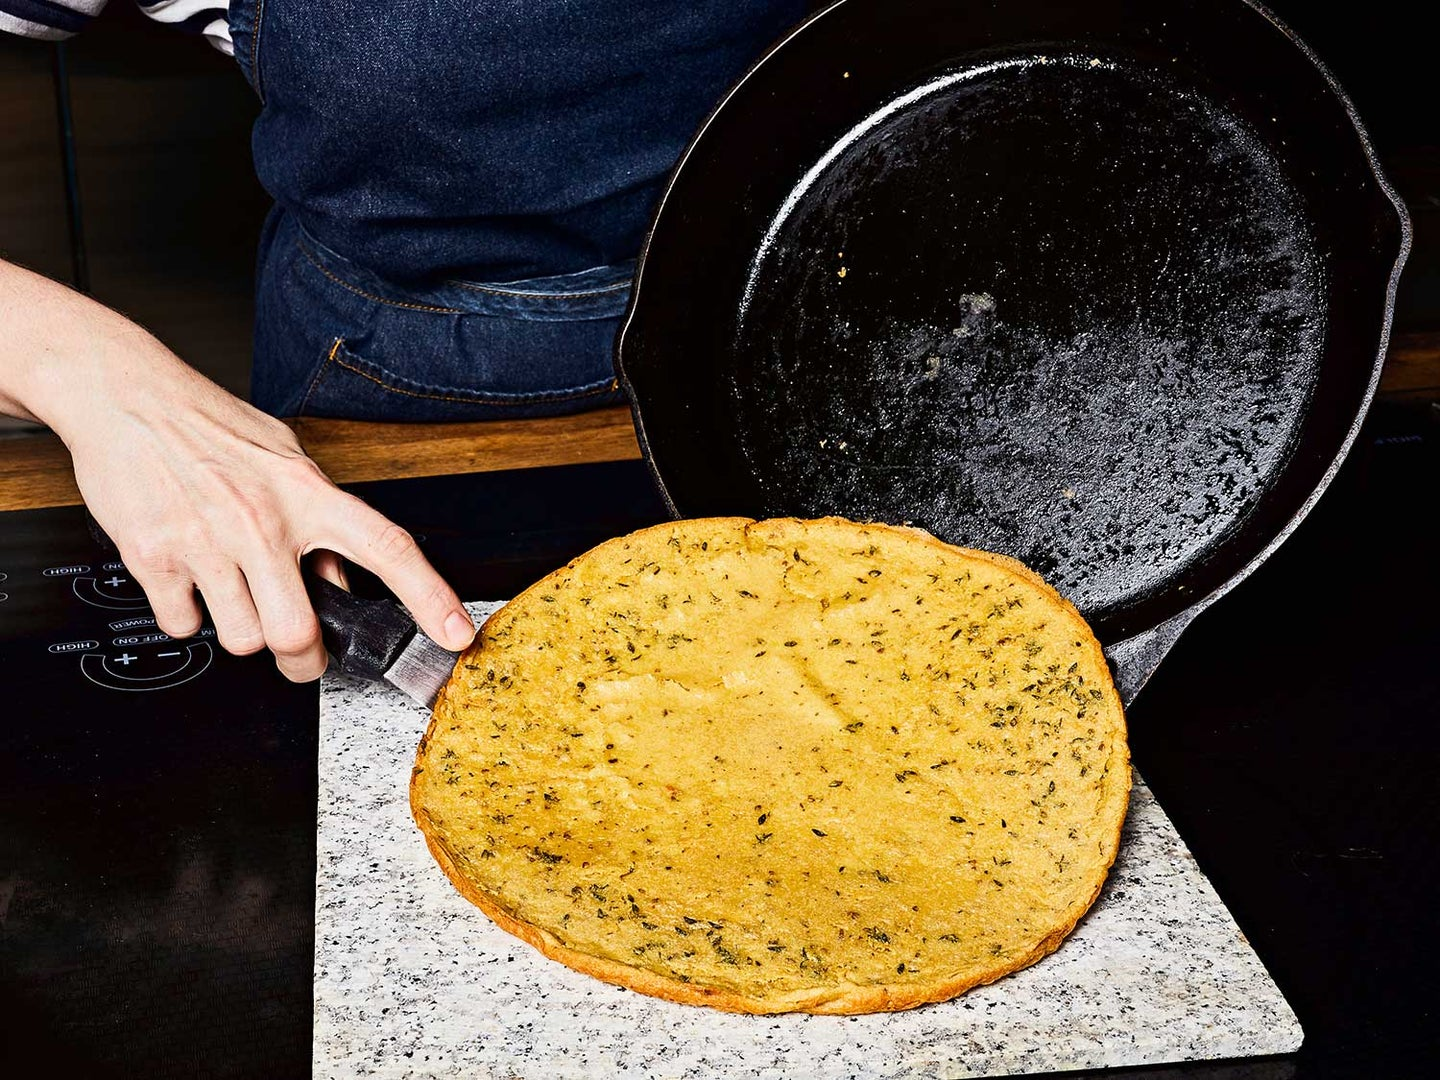 A thin offset spatula will help you remove the farinata from the skillet in one piece.